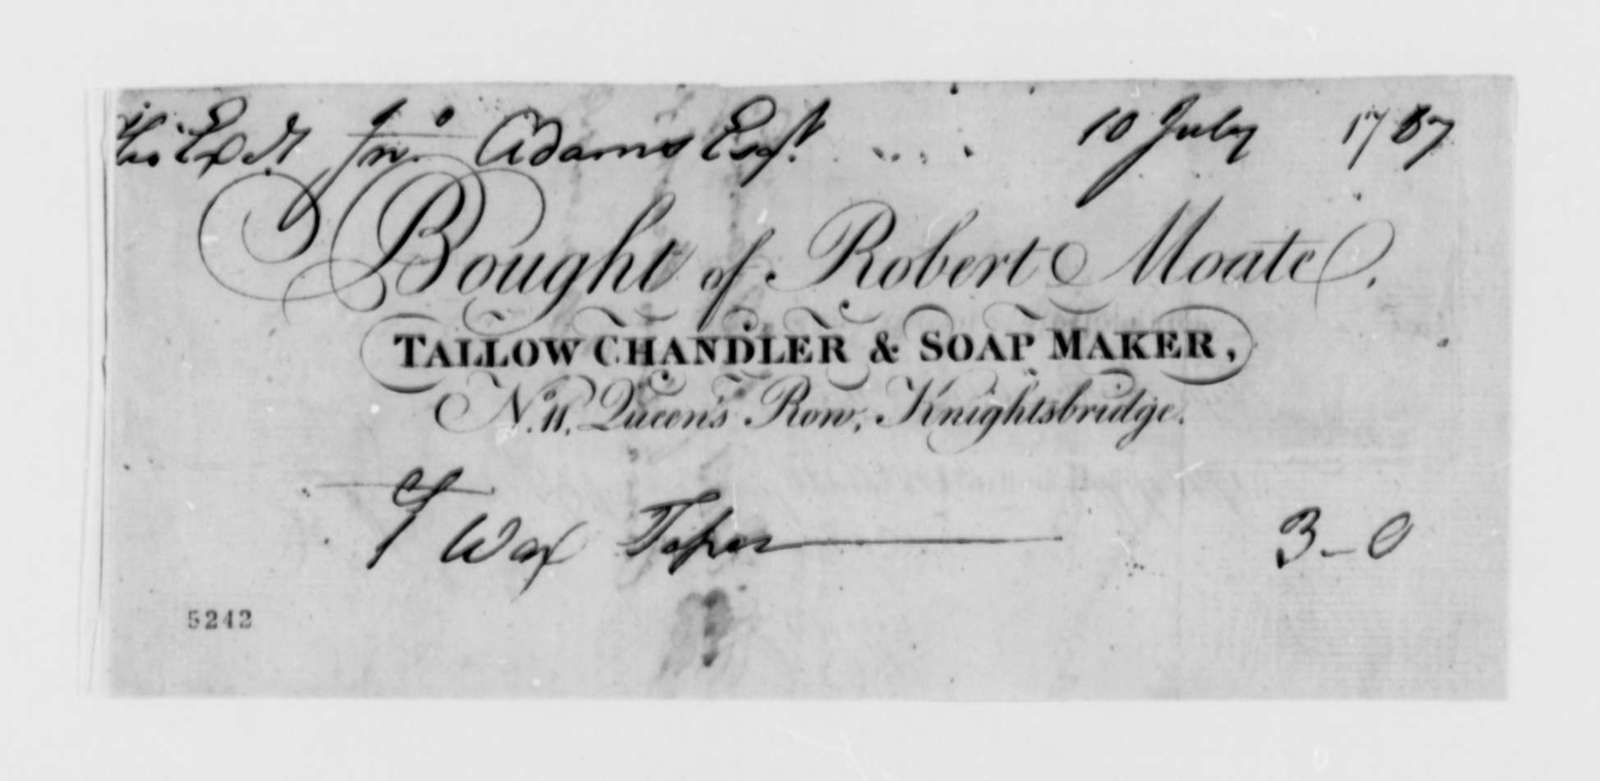 Robert Moate to John Adams, July 10, 1787, Receipt for Wax Taper